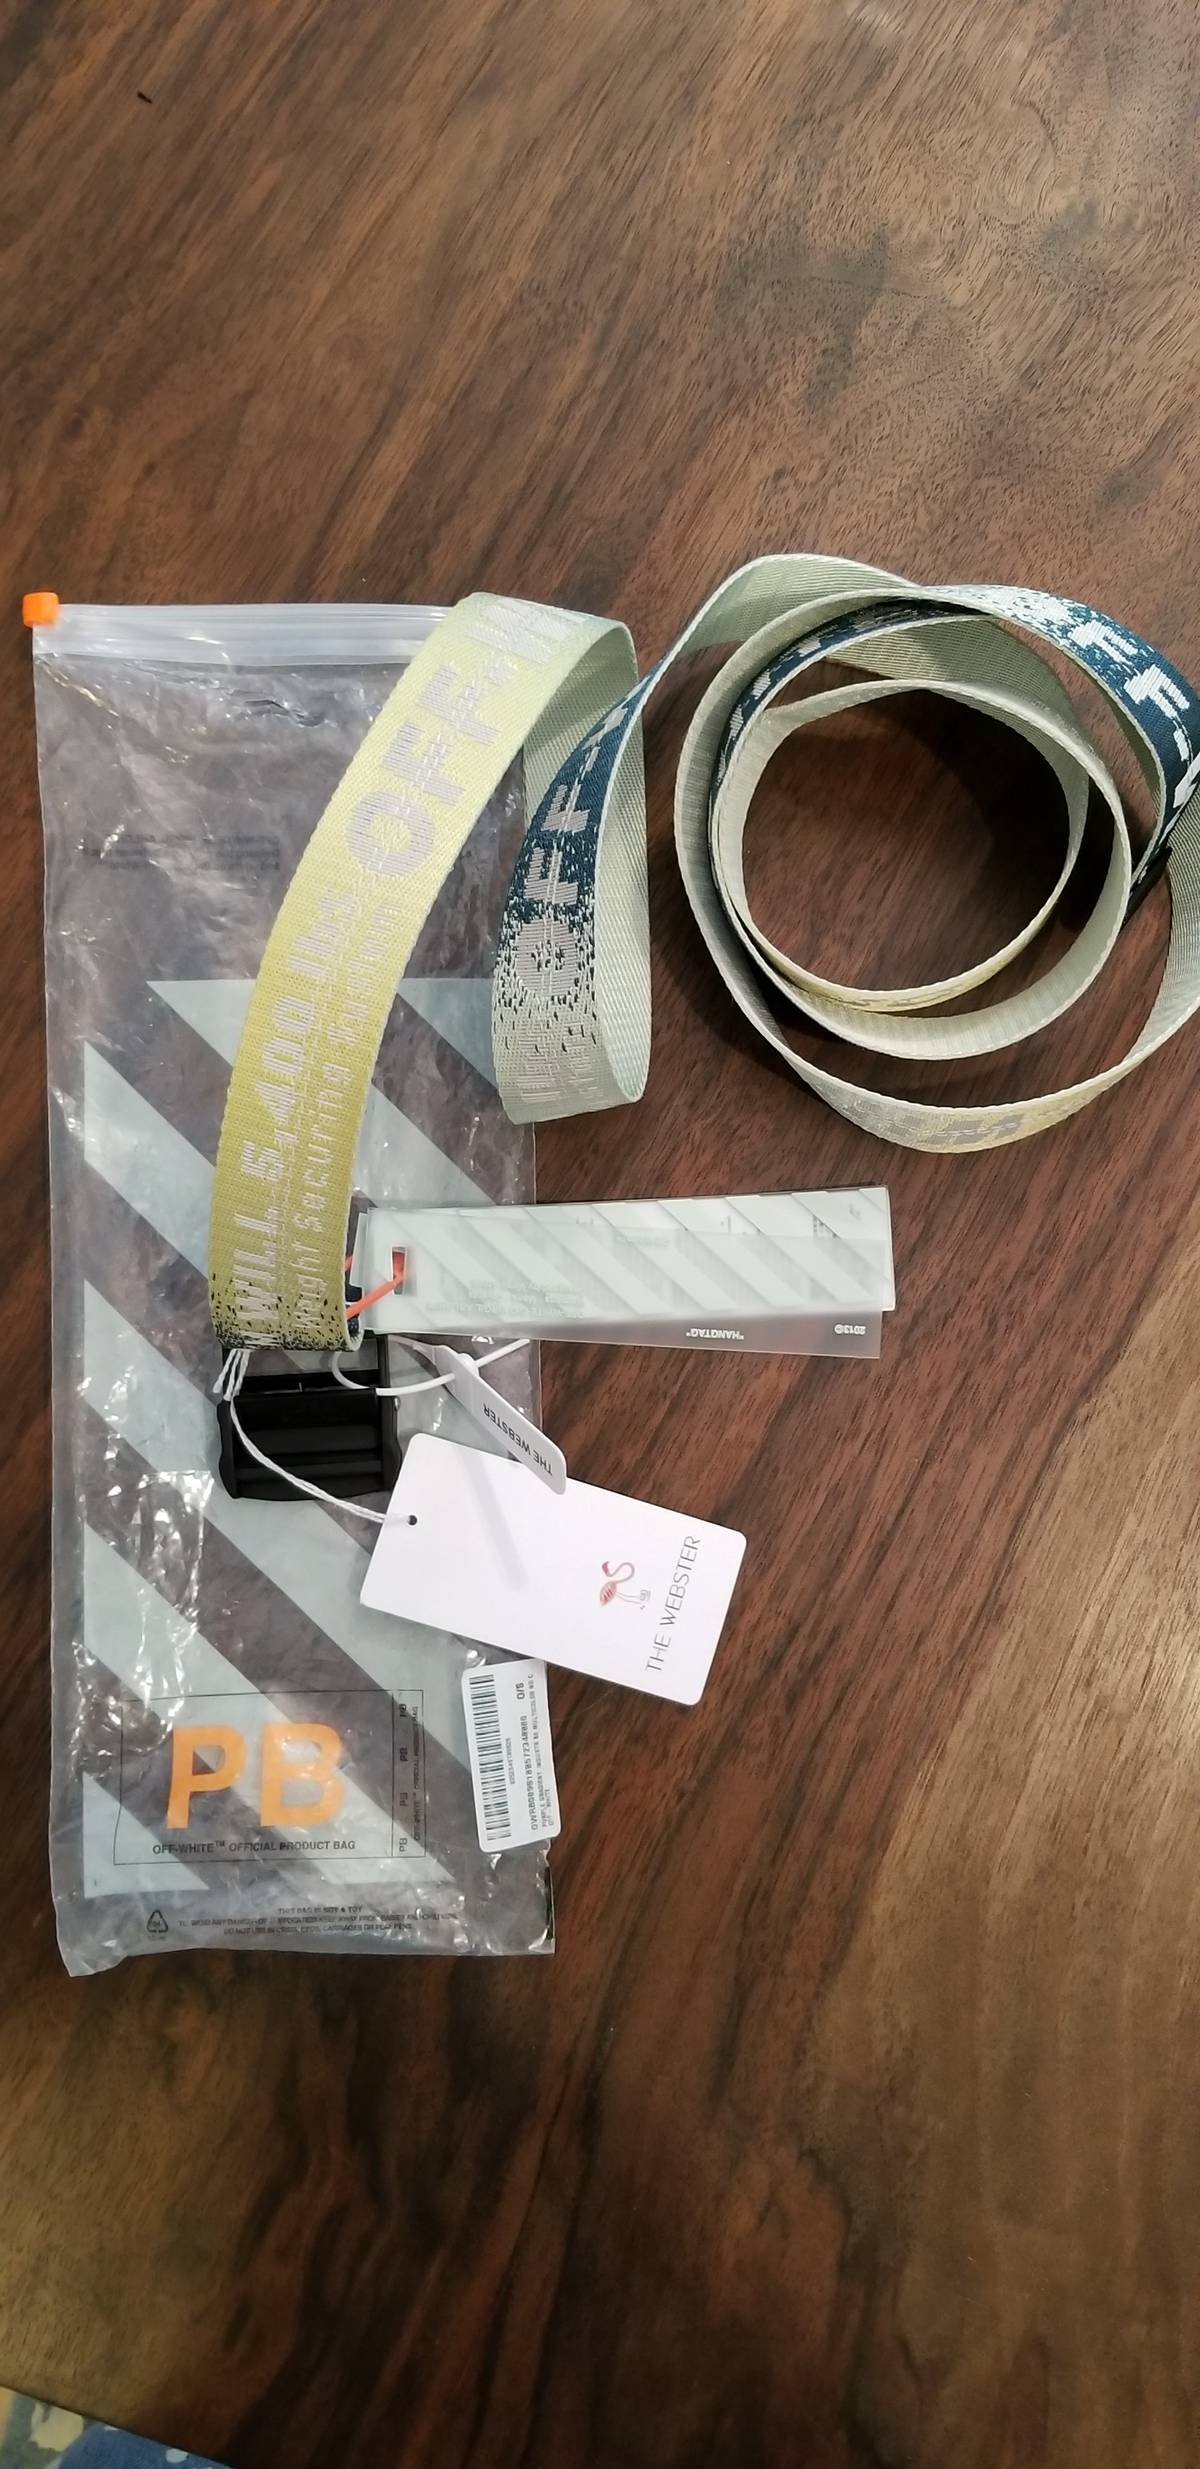 e35e55c9f3a Off-White × Webster ×. The Webster x Off White exclusive airbrush industrial  belt ...